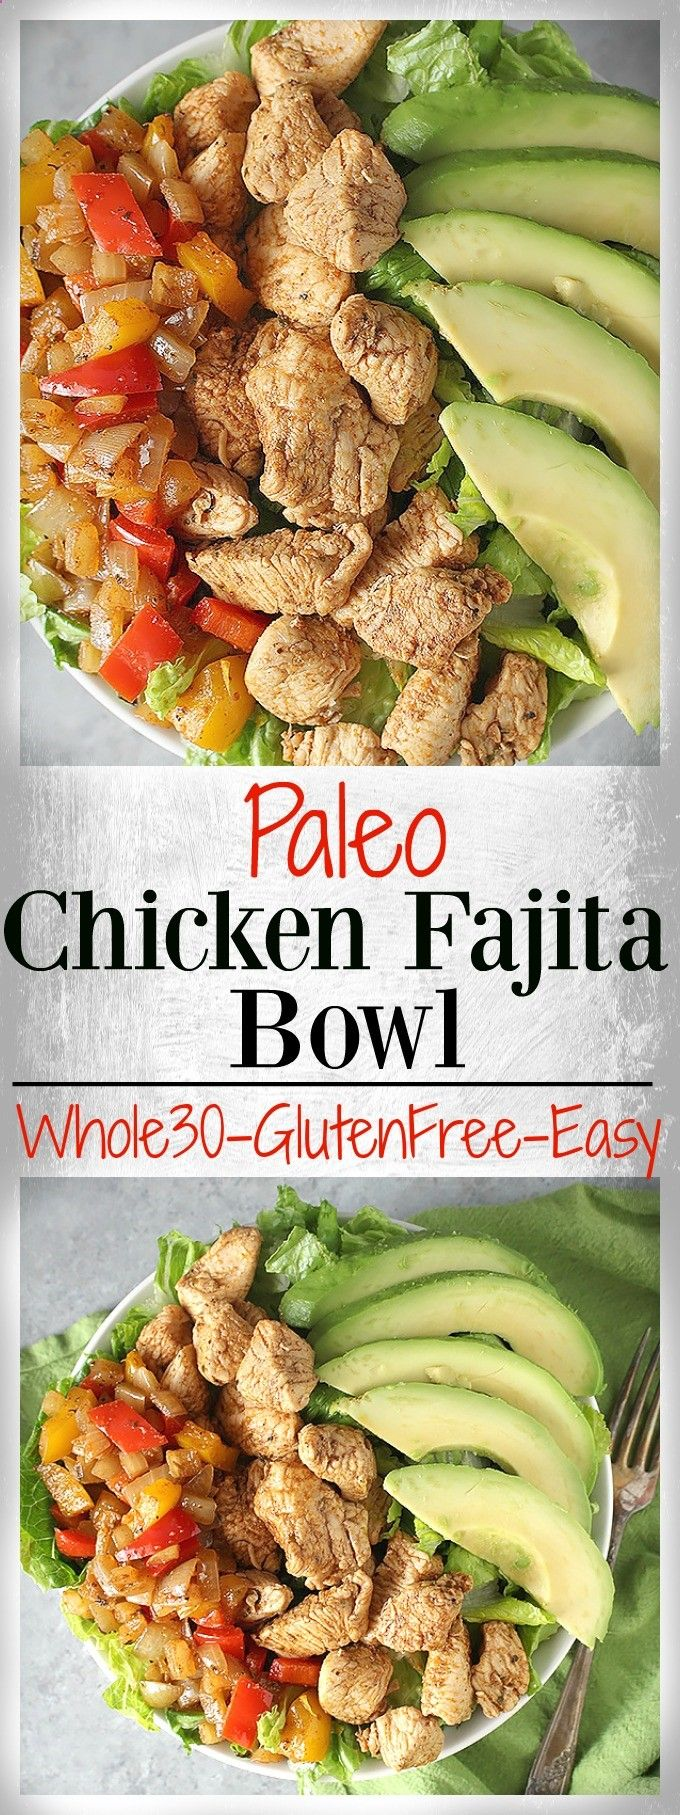 This Paleo Chicken Fajita Bowl is a healthy complete meal. Loaded with veggies and juicy chicken and easy to make.